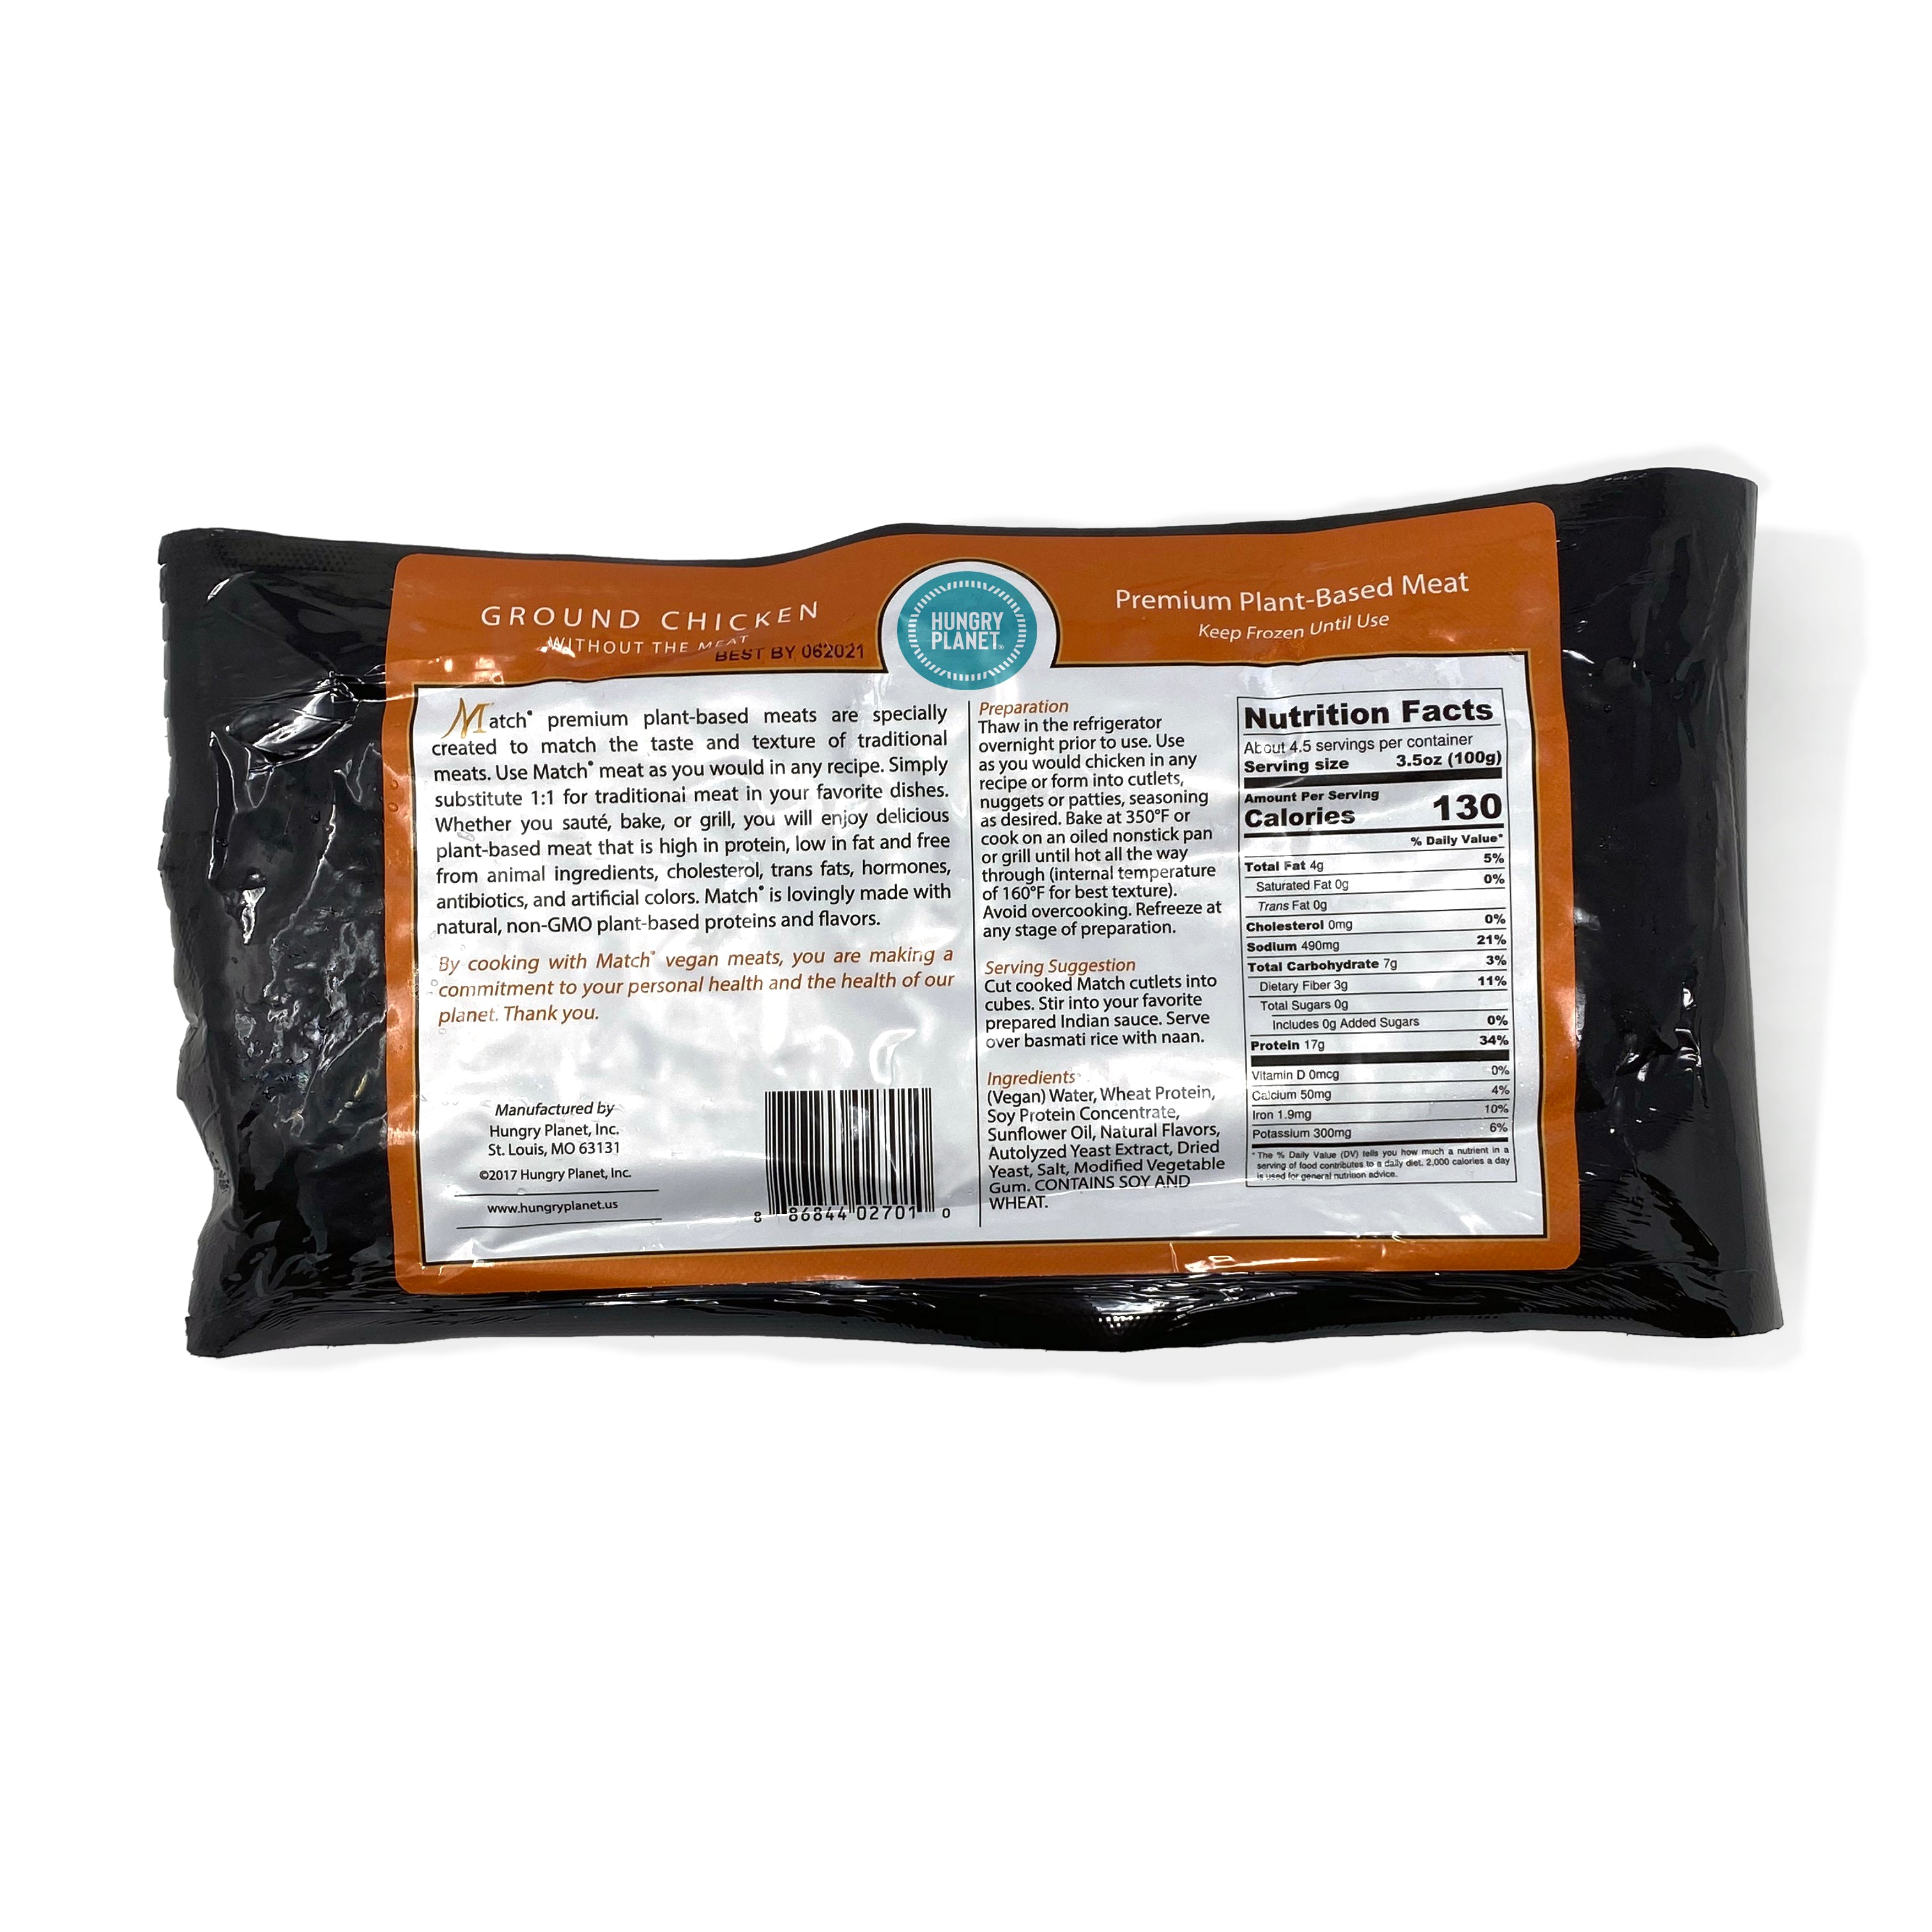 VARIETY PACK - GROUND<span>Hungry Planet Chicken<sup>™</sup> Ground (x2)</span> <span>Hungry Planet Pork<sup>™</sup> Ground (x2)</span><span>100% Plant-Based, 1 lb chubs</span> (Pack of 4 chubs)